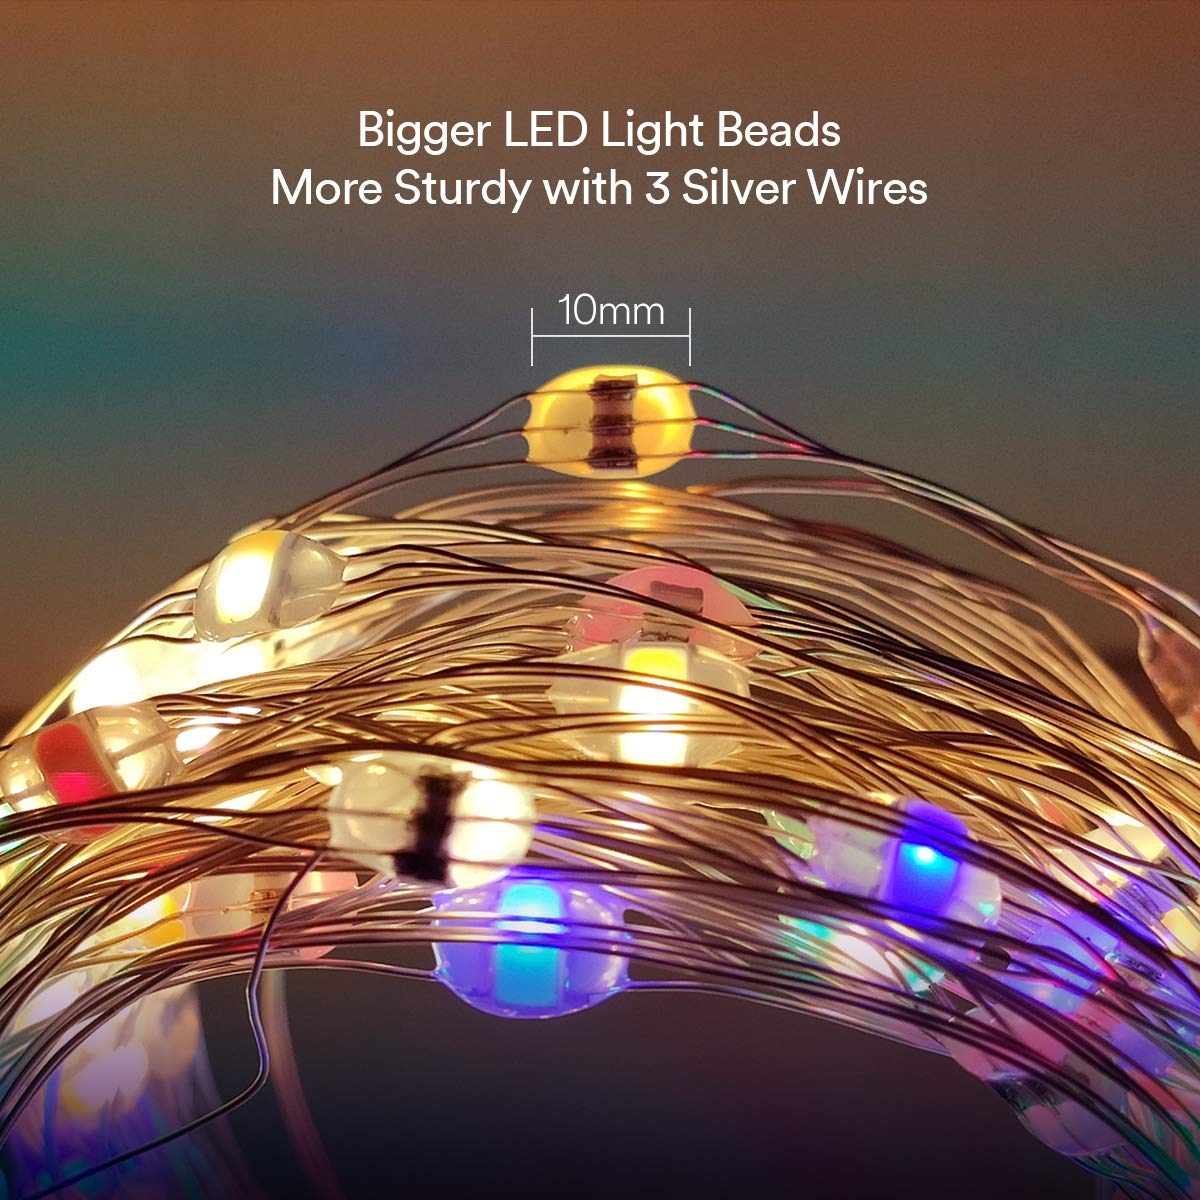 Lumary Music Sync 100 LED 33ft String Light, Battery Powered Dimmable Fairy Lights with Timer and Remote Control, Waterproof Decorative Lights for Bedroom, Patio, Garden, Parties, Wedding, Christmas